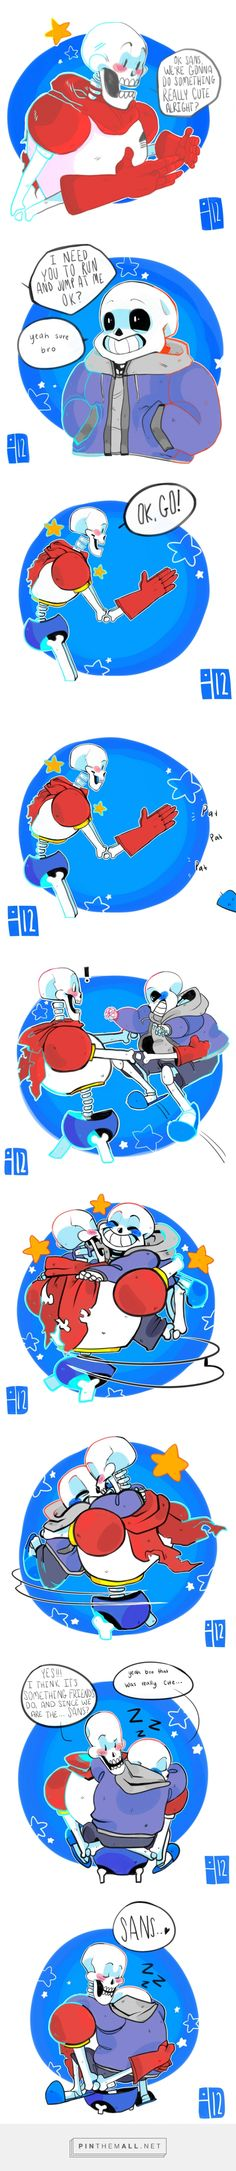 Papyrus and Sans - comic they are the cutest brothers I have ever seen!!! I CANT TAKE IT!!!